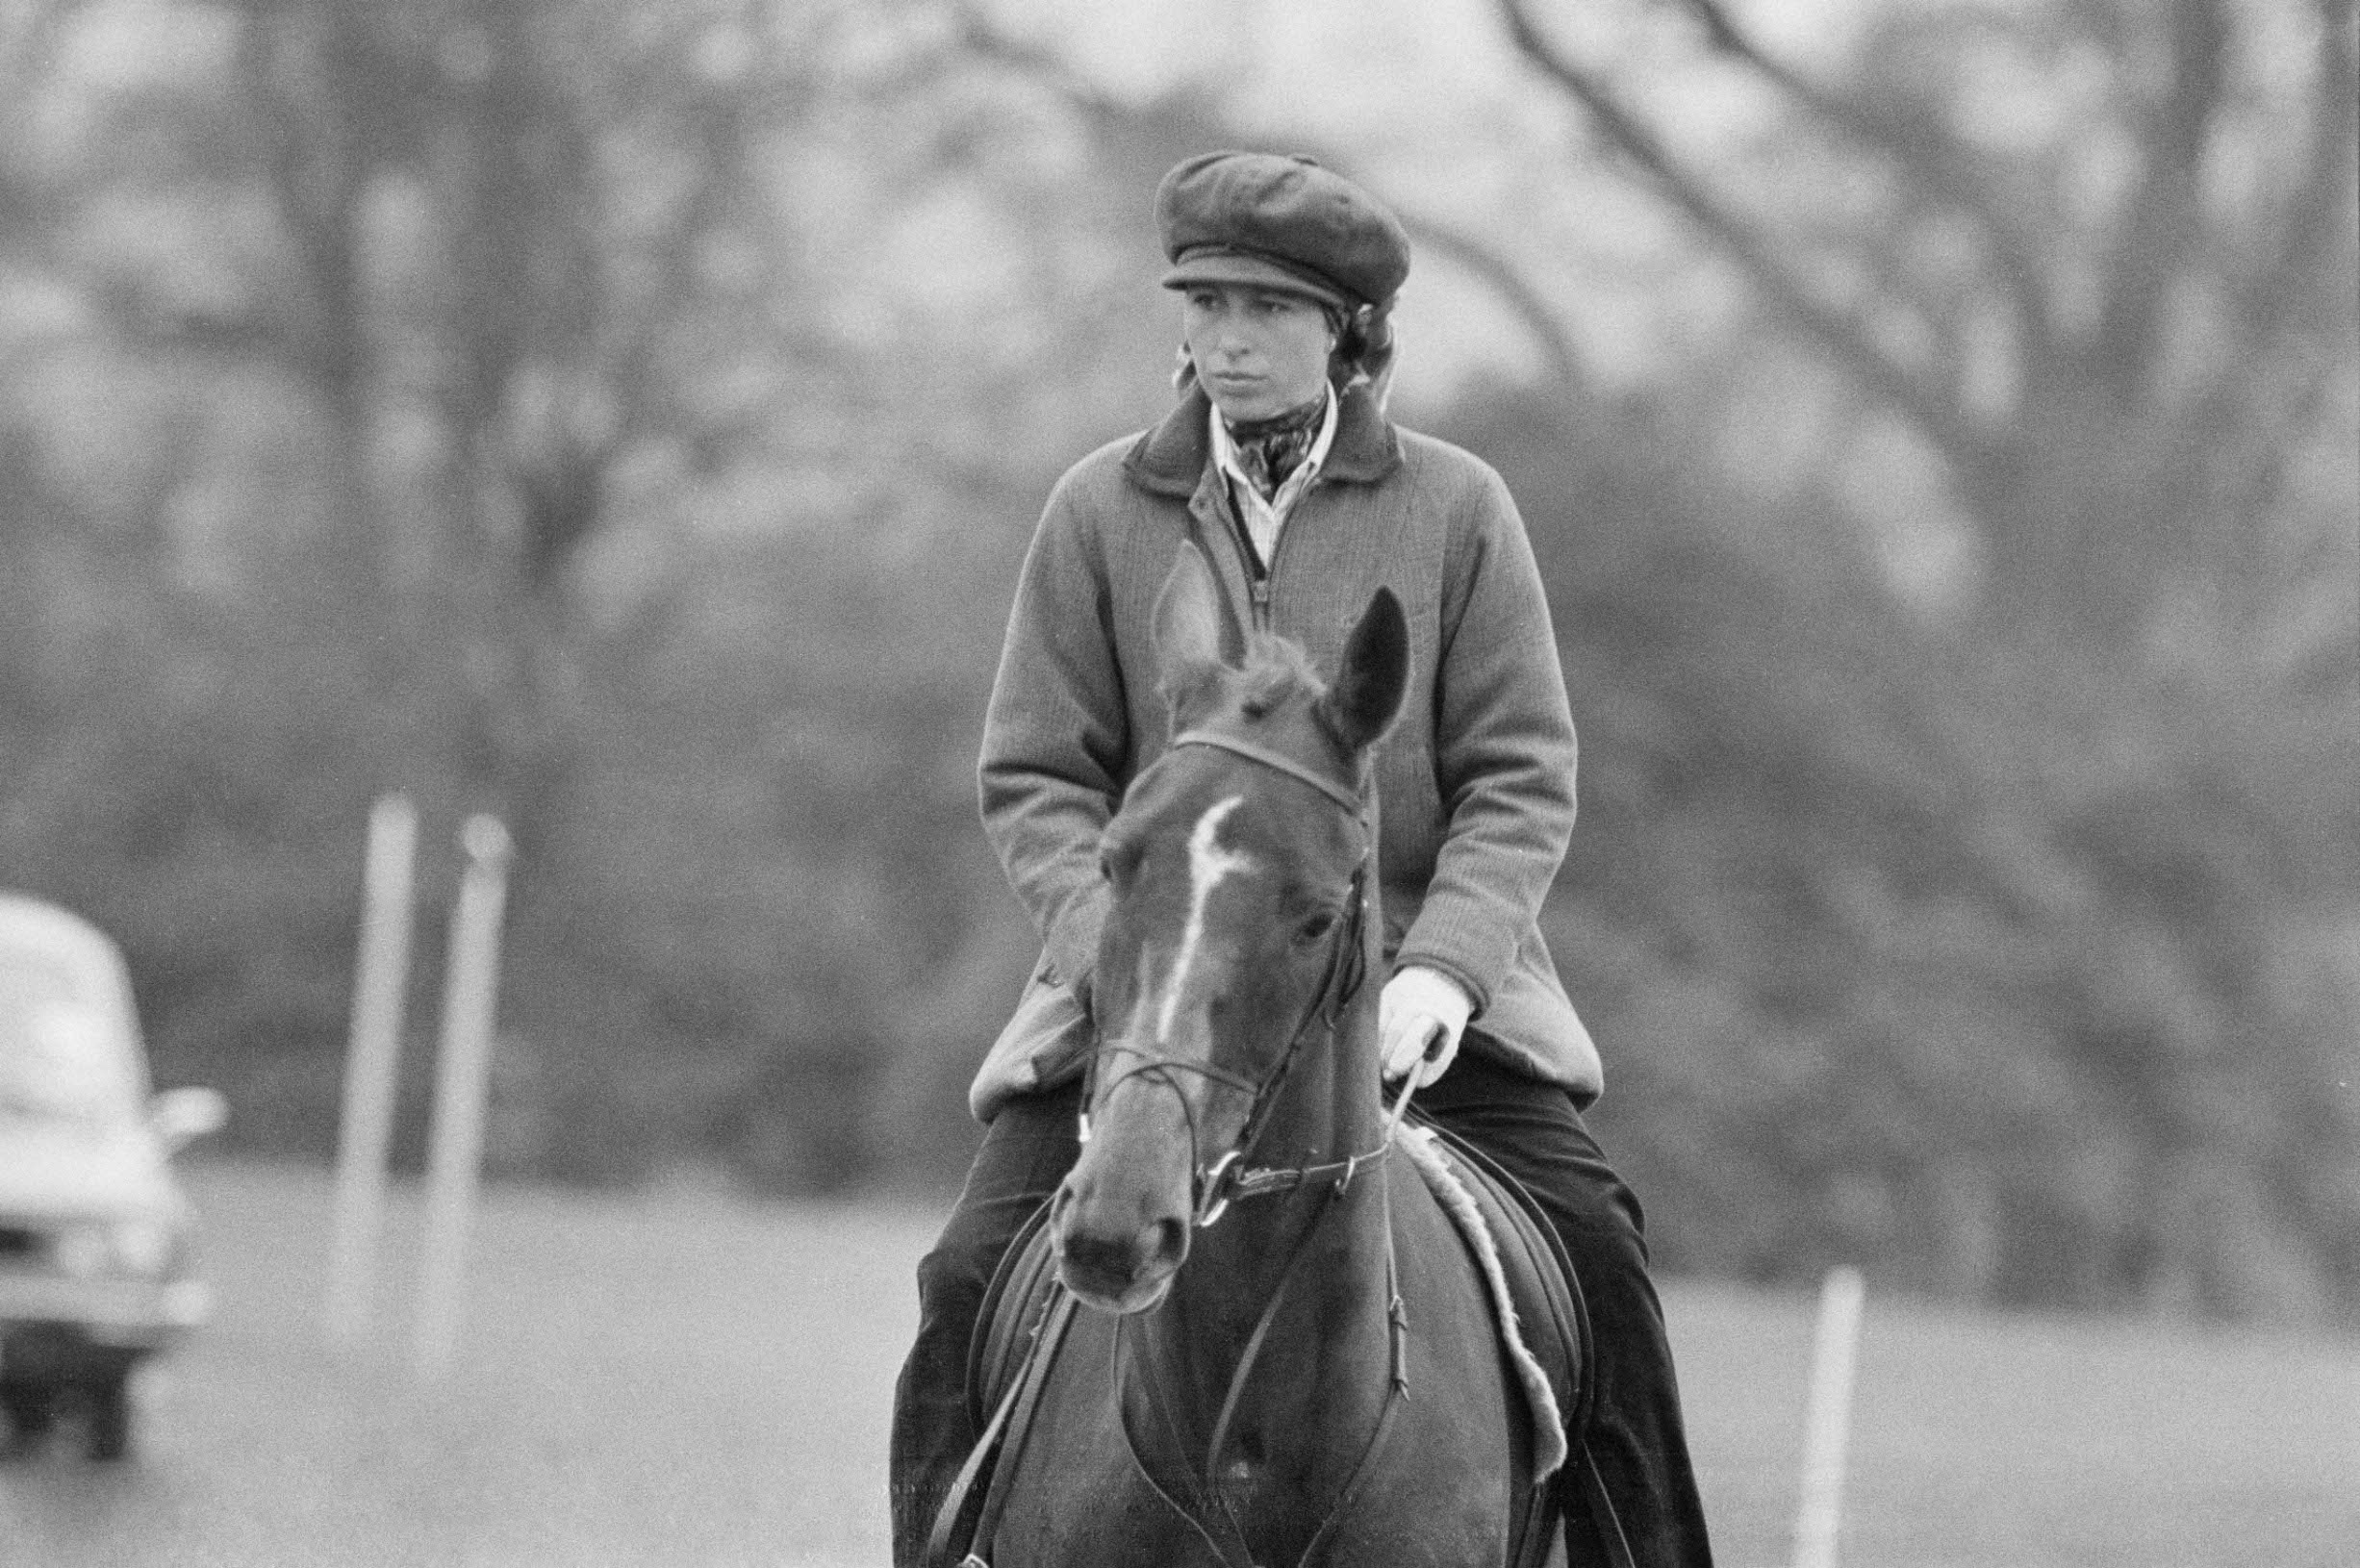 Anne, Princess Royal, riding a horse, UK, 25th April 1978. (Photo by Evening Standard/Hulton Archive/Getty Images)